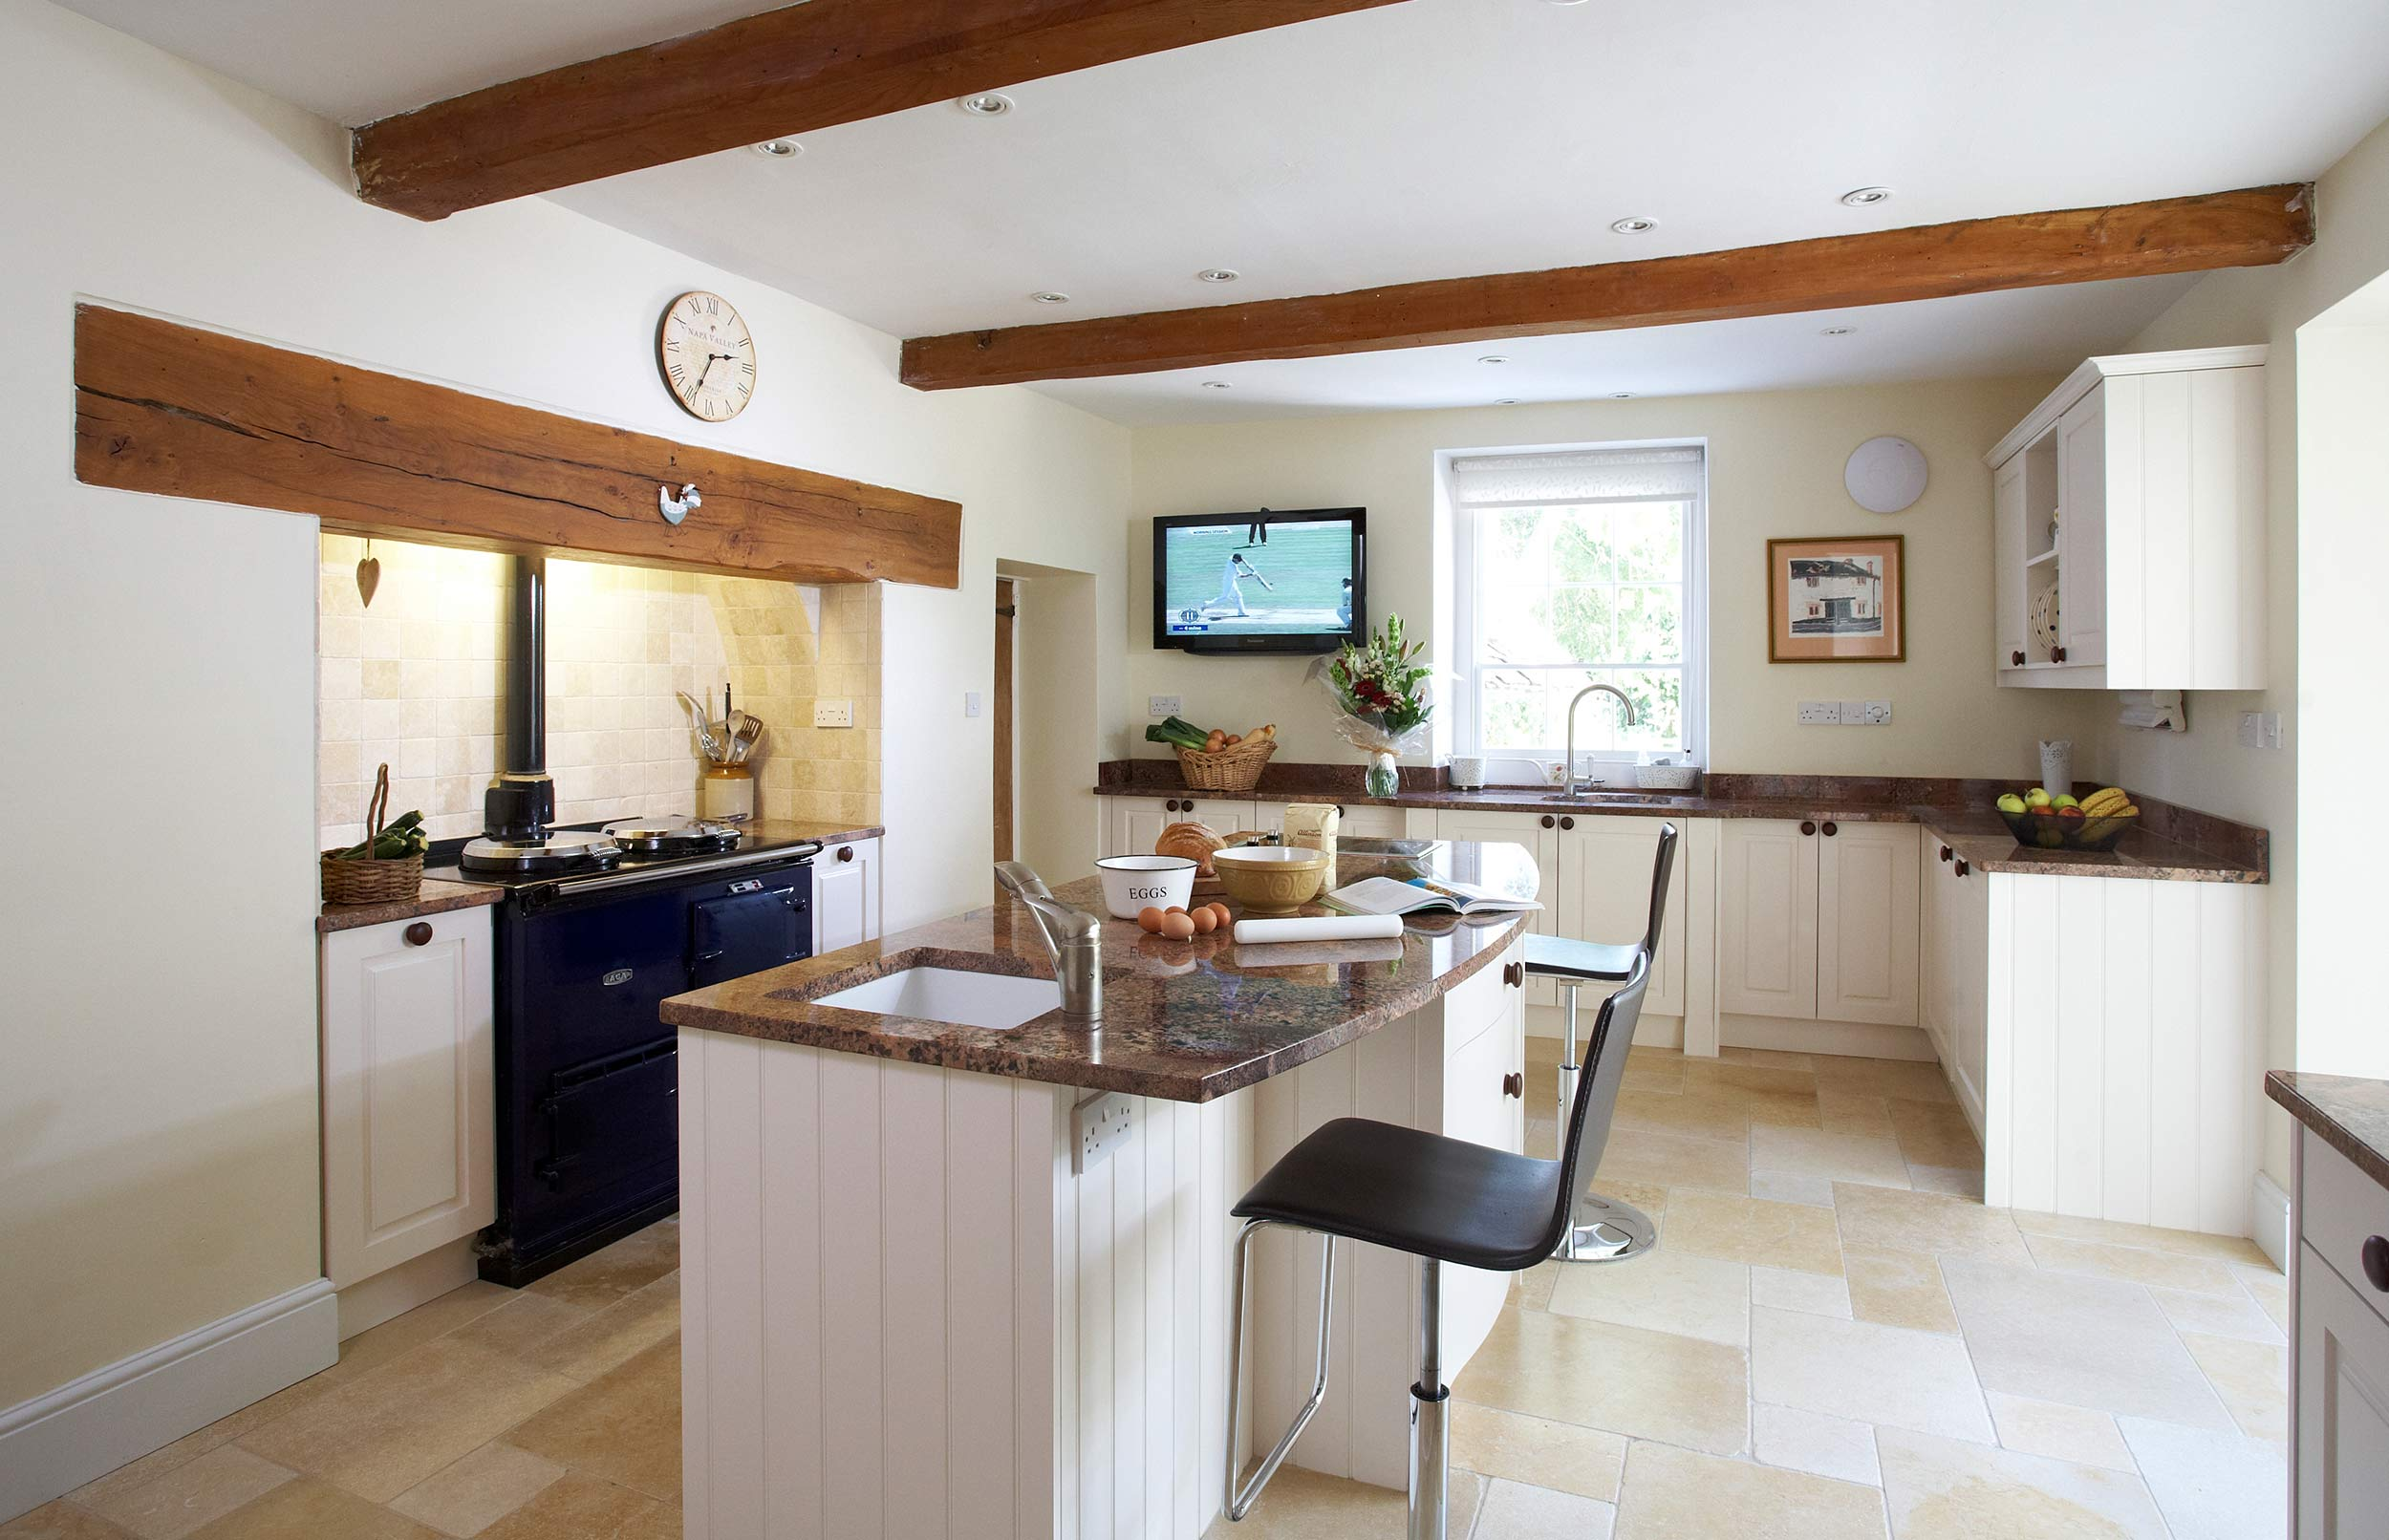 Classic Bespoke Kitchen with Blue Range, Stone Floor and Cream Cupboards